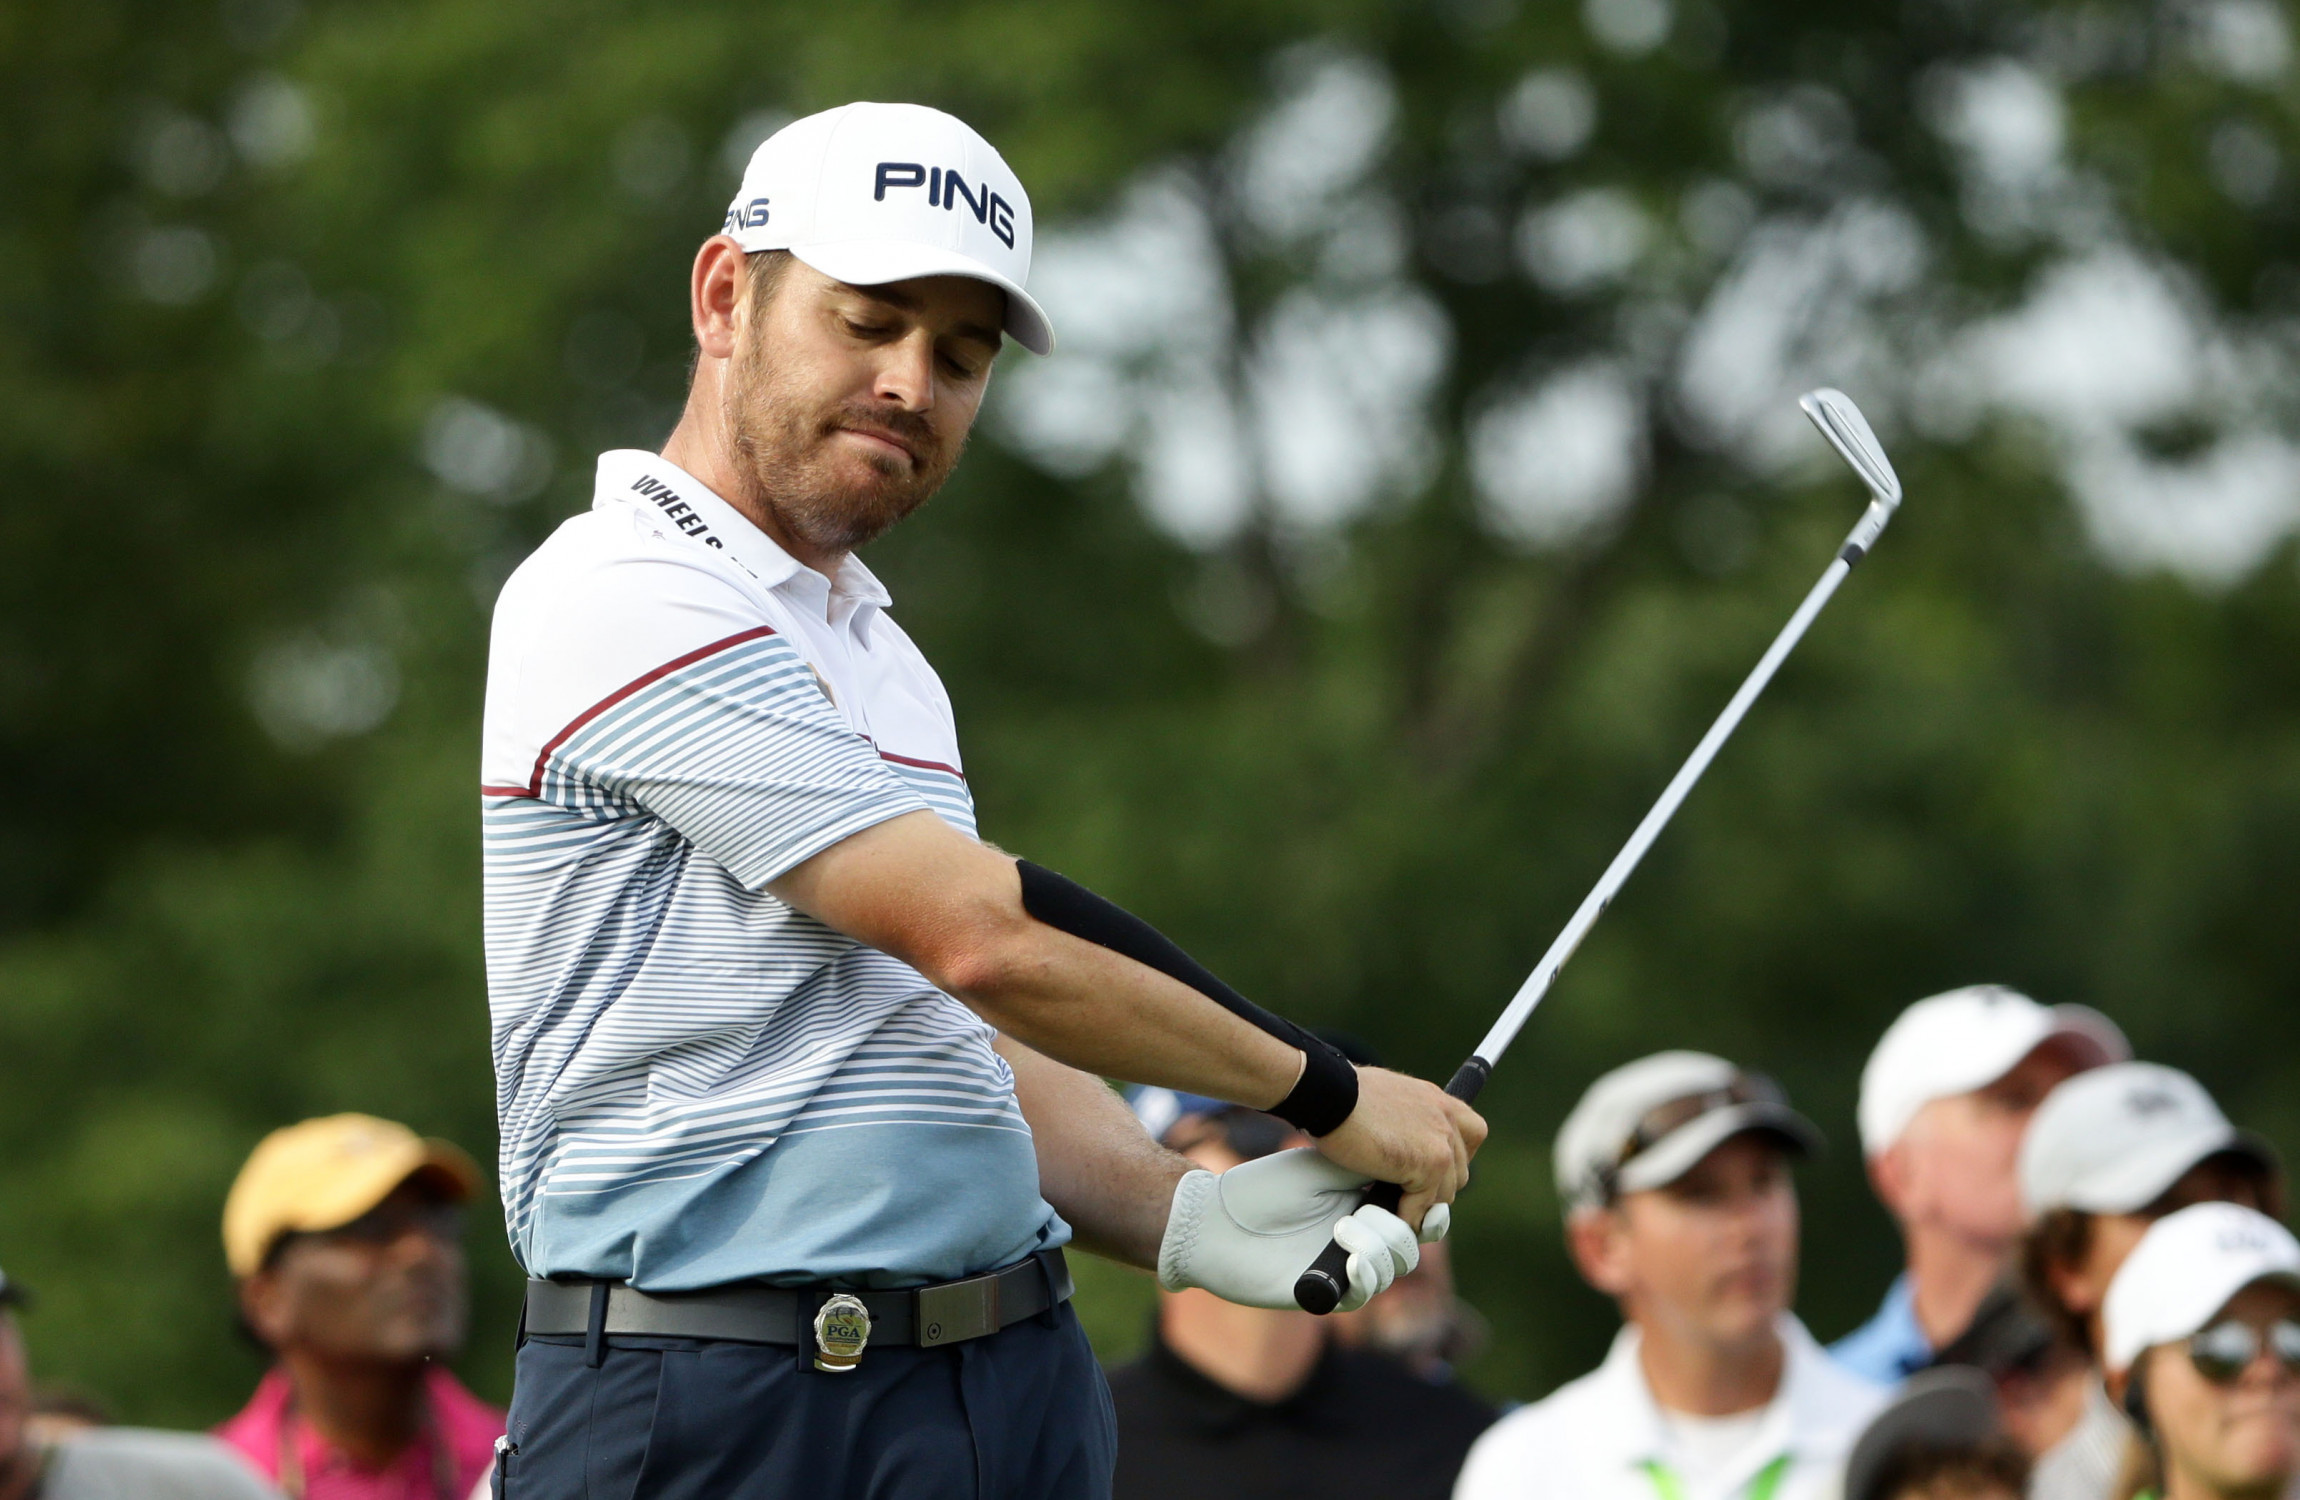 Louis Oosthuizen withdraws from Joburg Open after injuring fingers